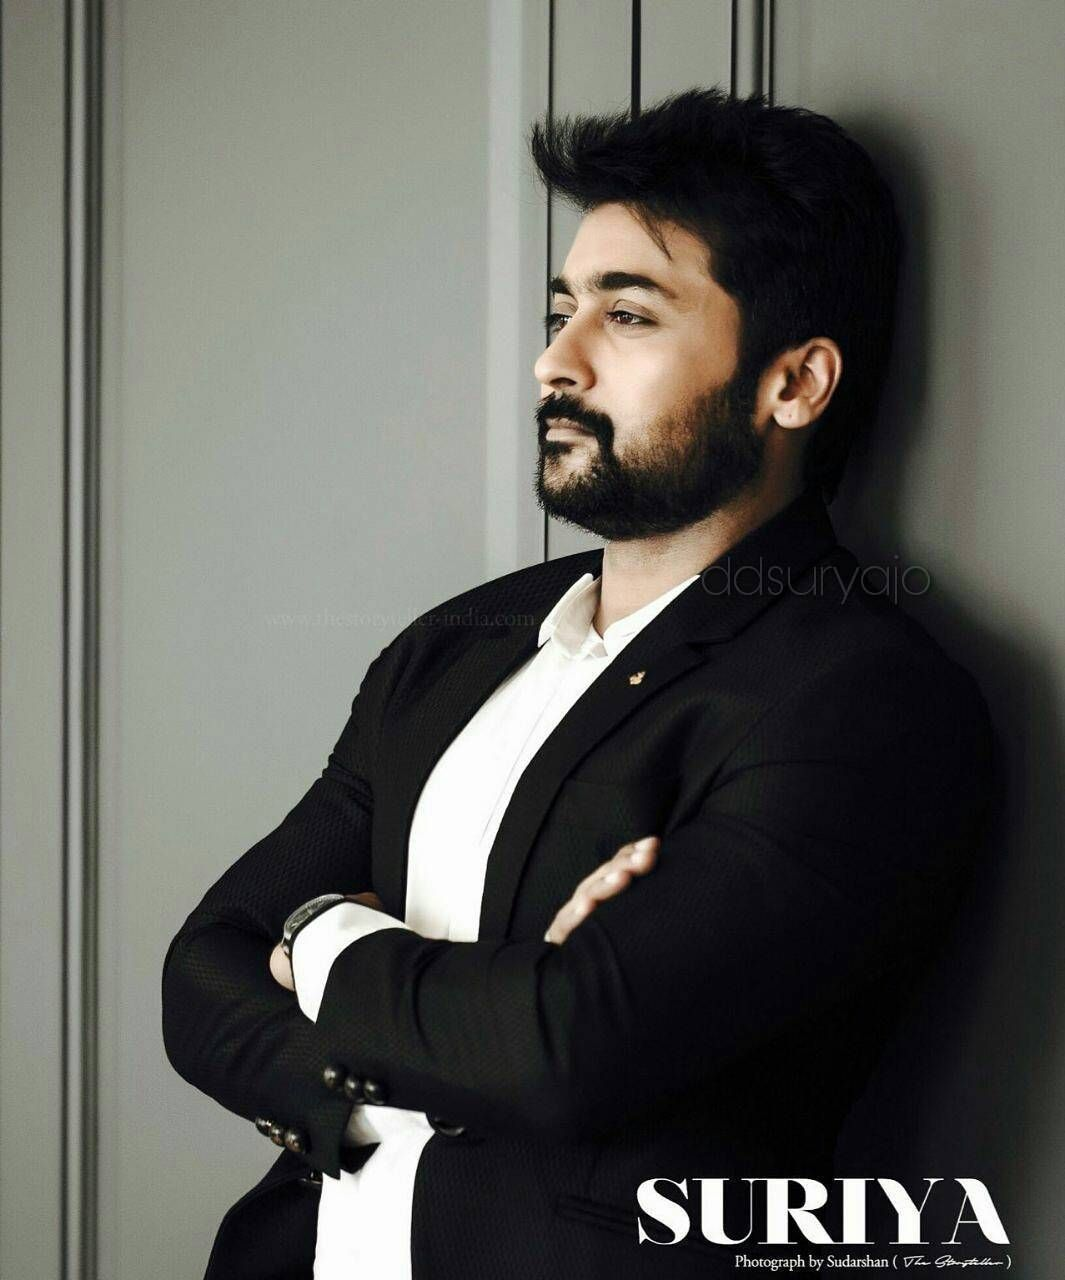 Surya hero stylish images